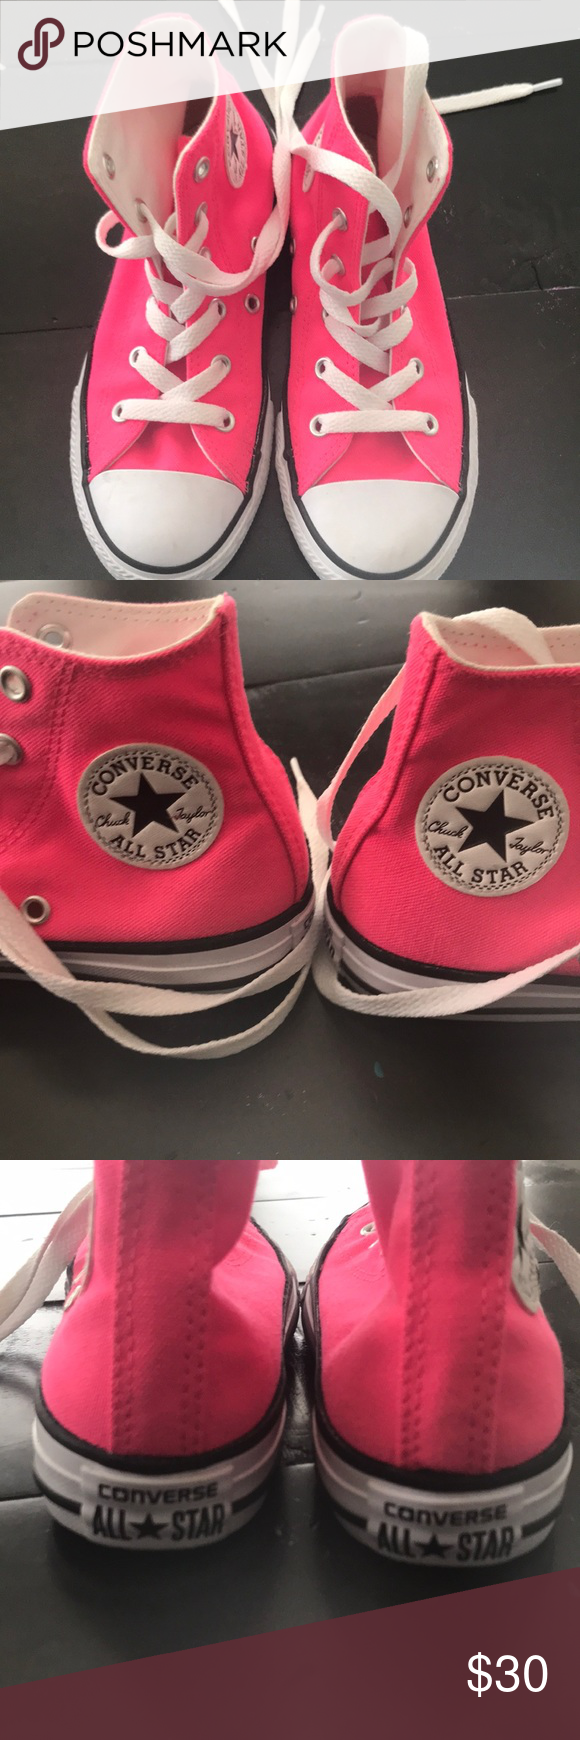 3c71a542e76d Girls hot pink converse Girls hot pink converse shoes. Size 13. Worn once  for a dance recital. Only worn indoors. Converse Shoes Sneakers